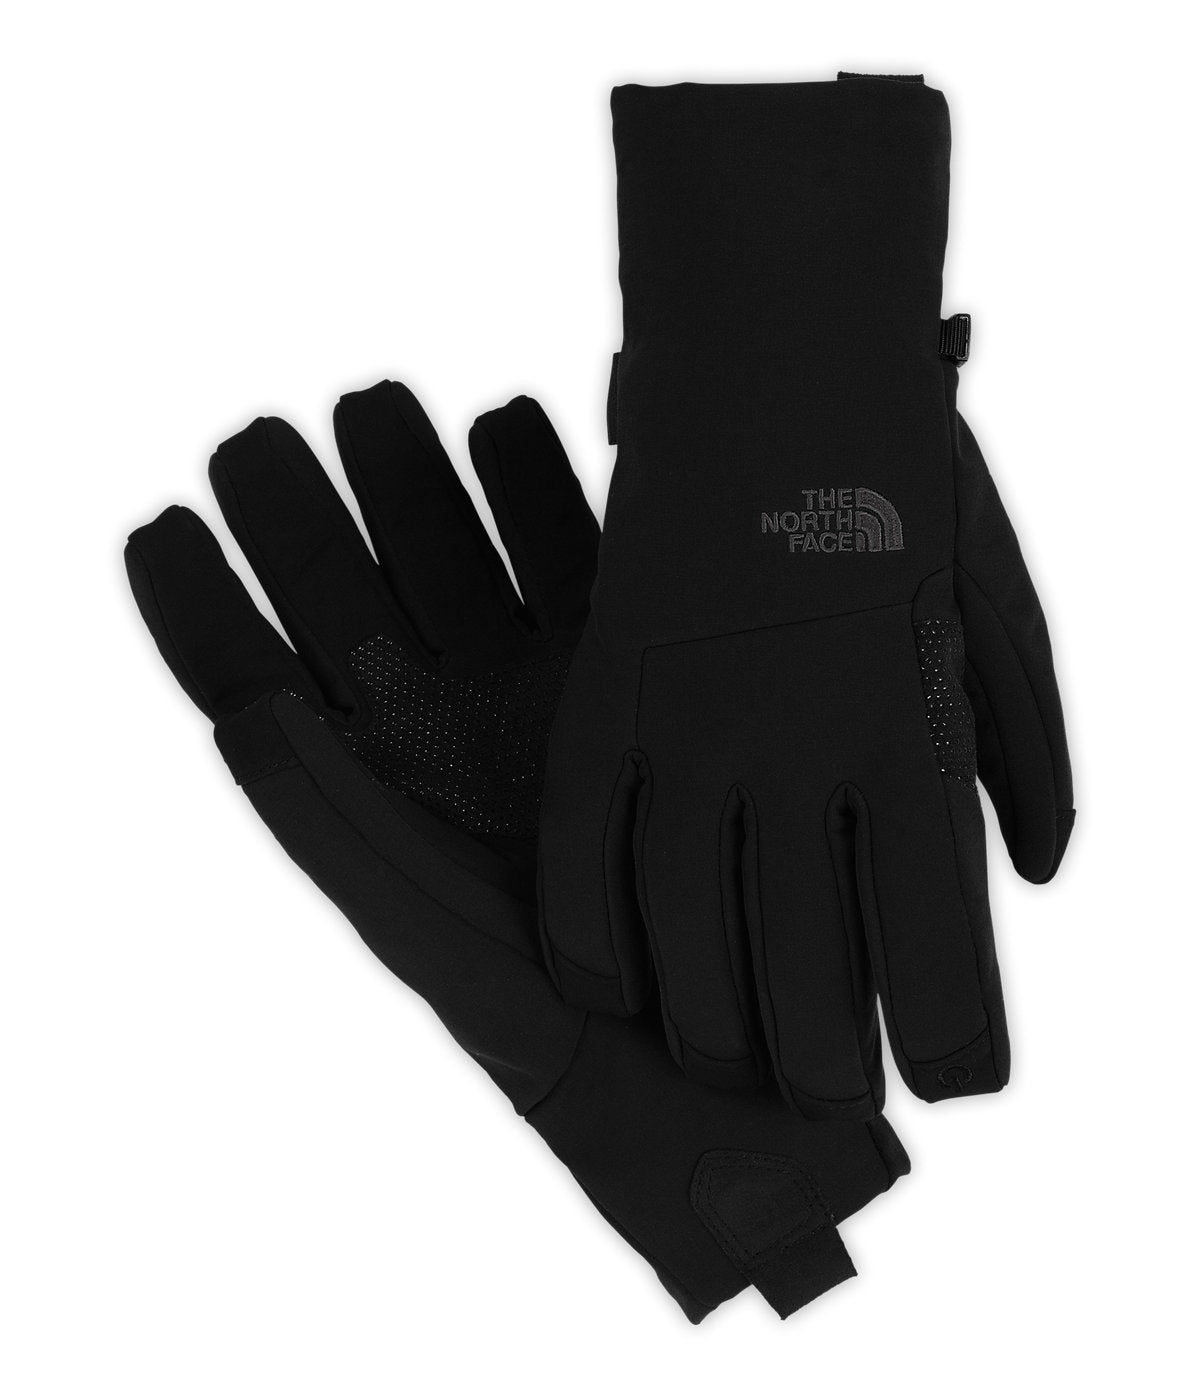 M Apex Etip Glove